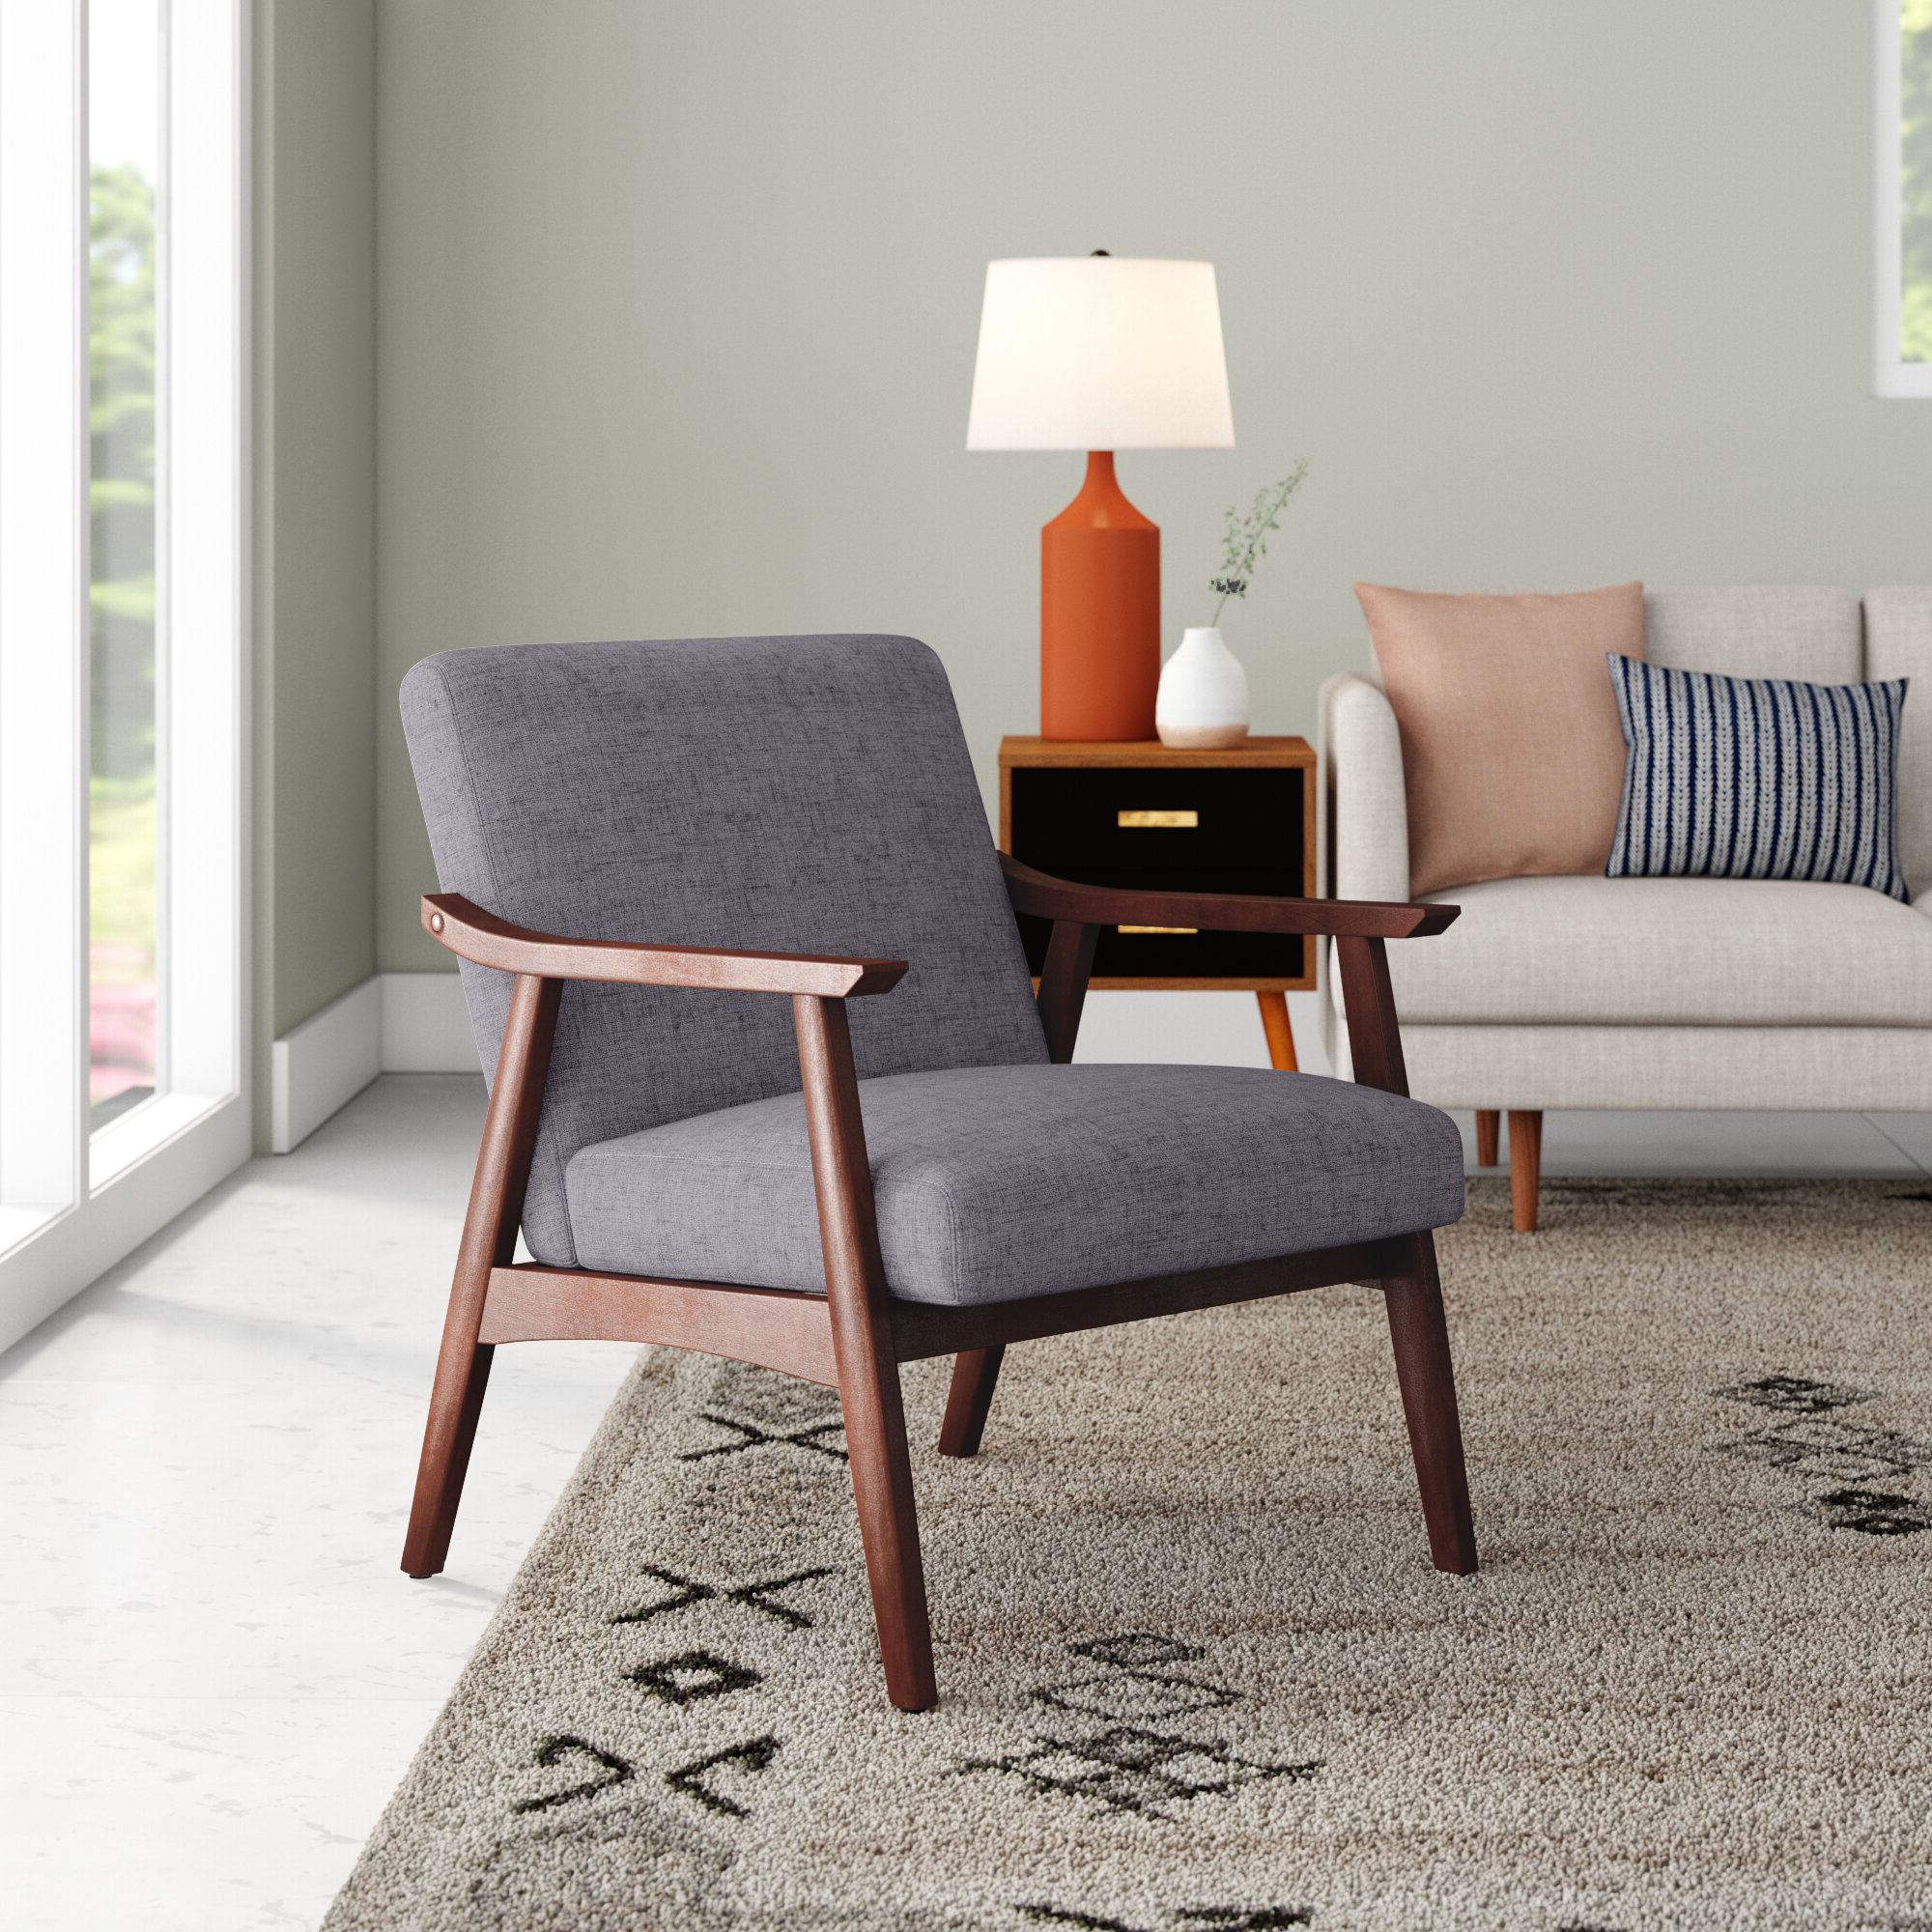 Nadene Armchairs Intended For Most Recently Released Scandinavian Accent Chairs You'll Love In (View 5 of 20)